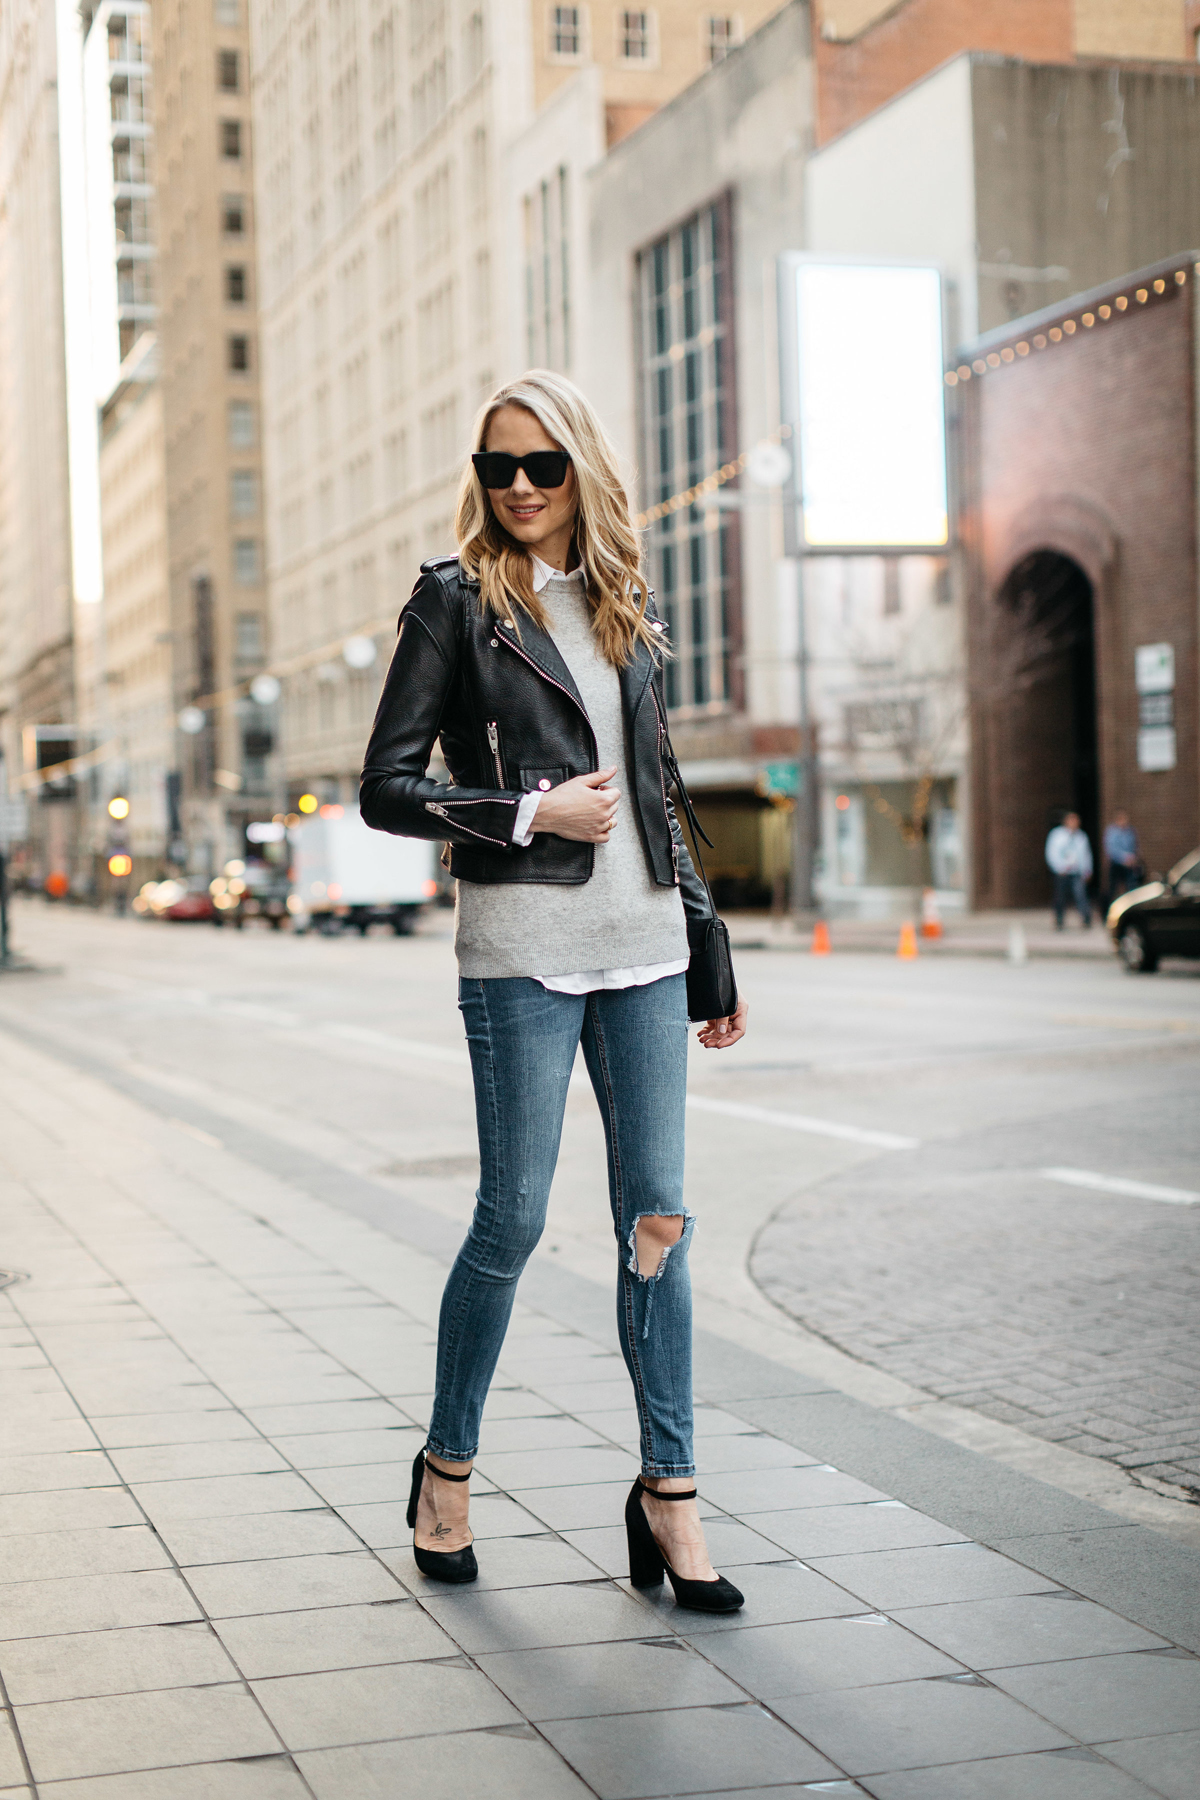 Fall Outfit, Winter Outfit, Black Leather Jacket, Grey Sweater, White Button-Down Shirt, Denim Ripped Skinny Jeans, Black Ankle Strap Pumps